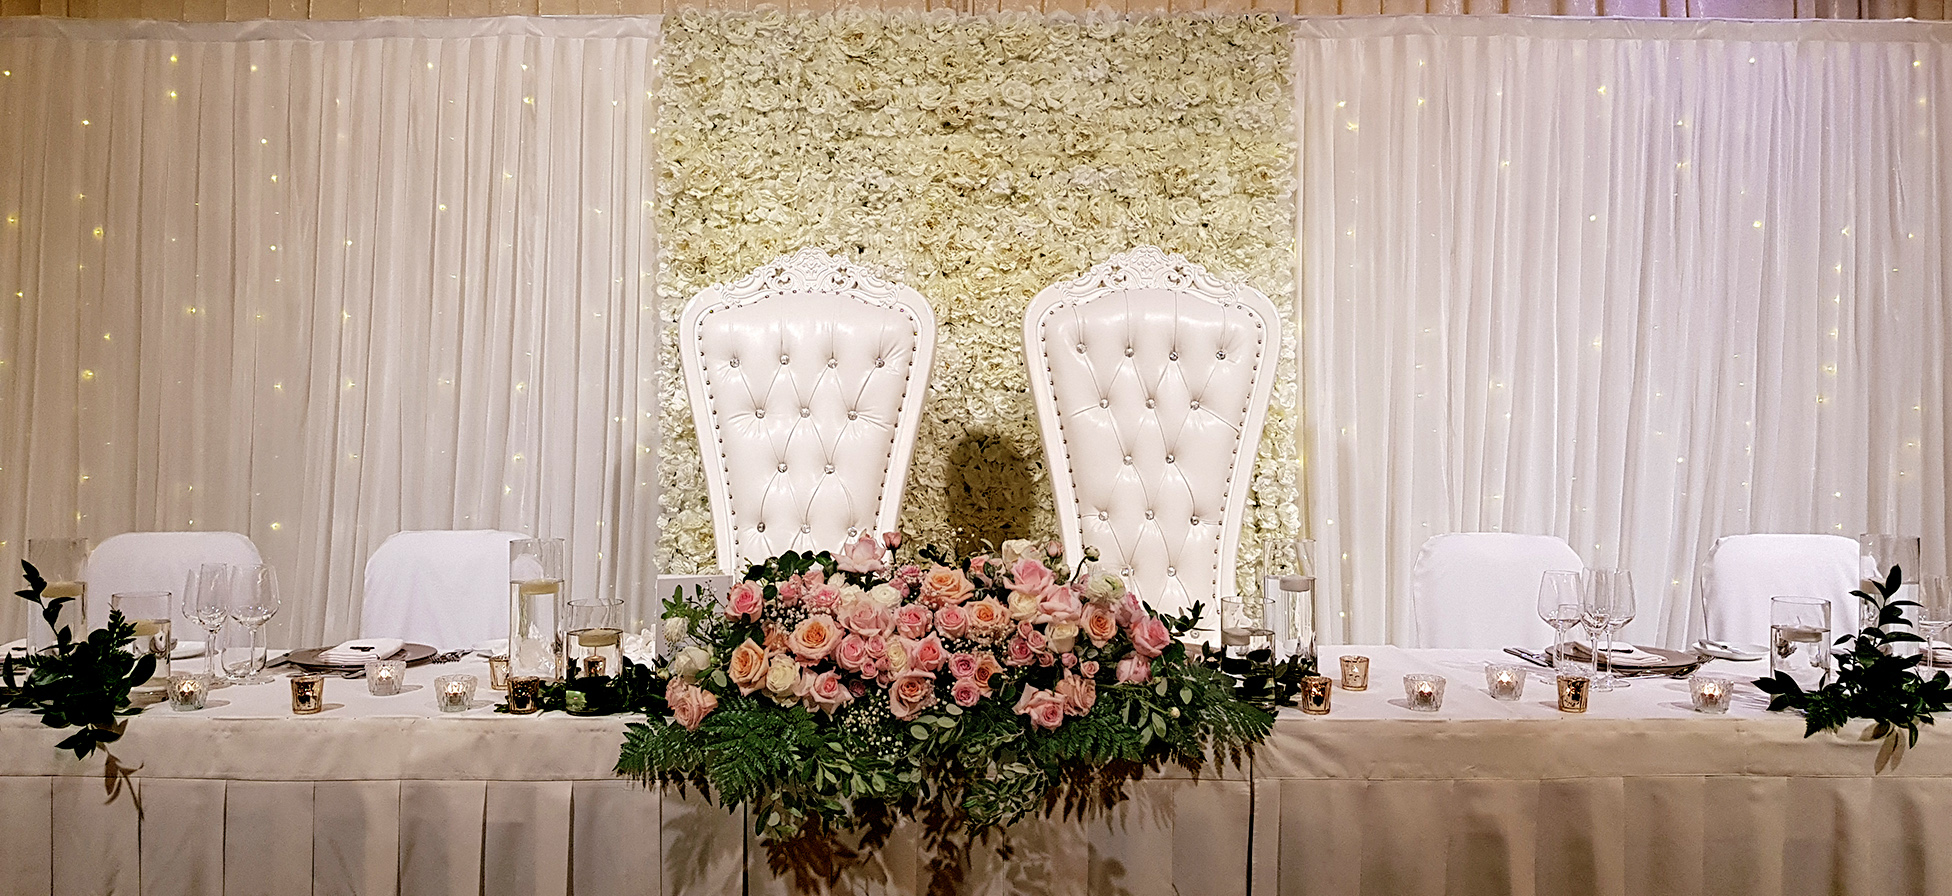 Bridal Table Backdrop $850